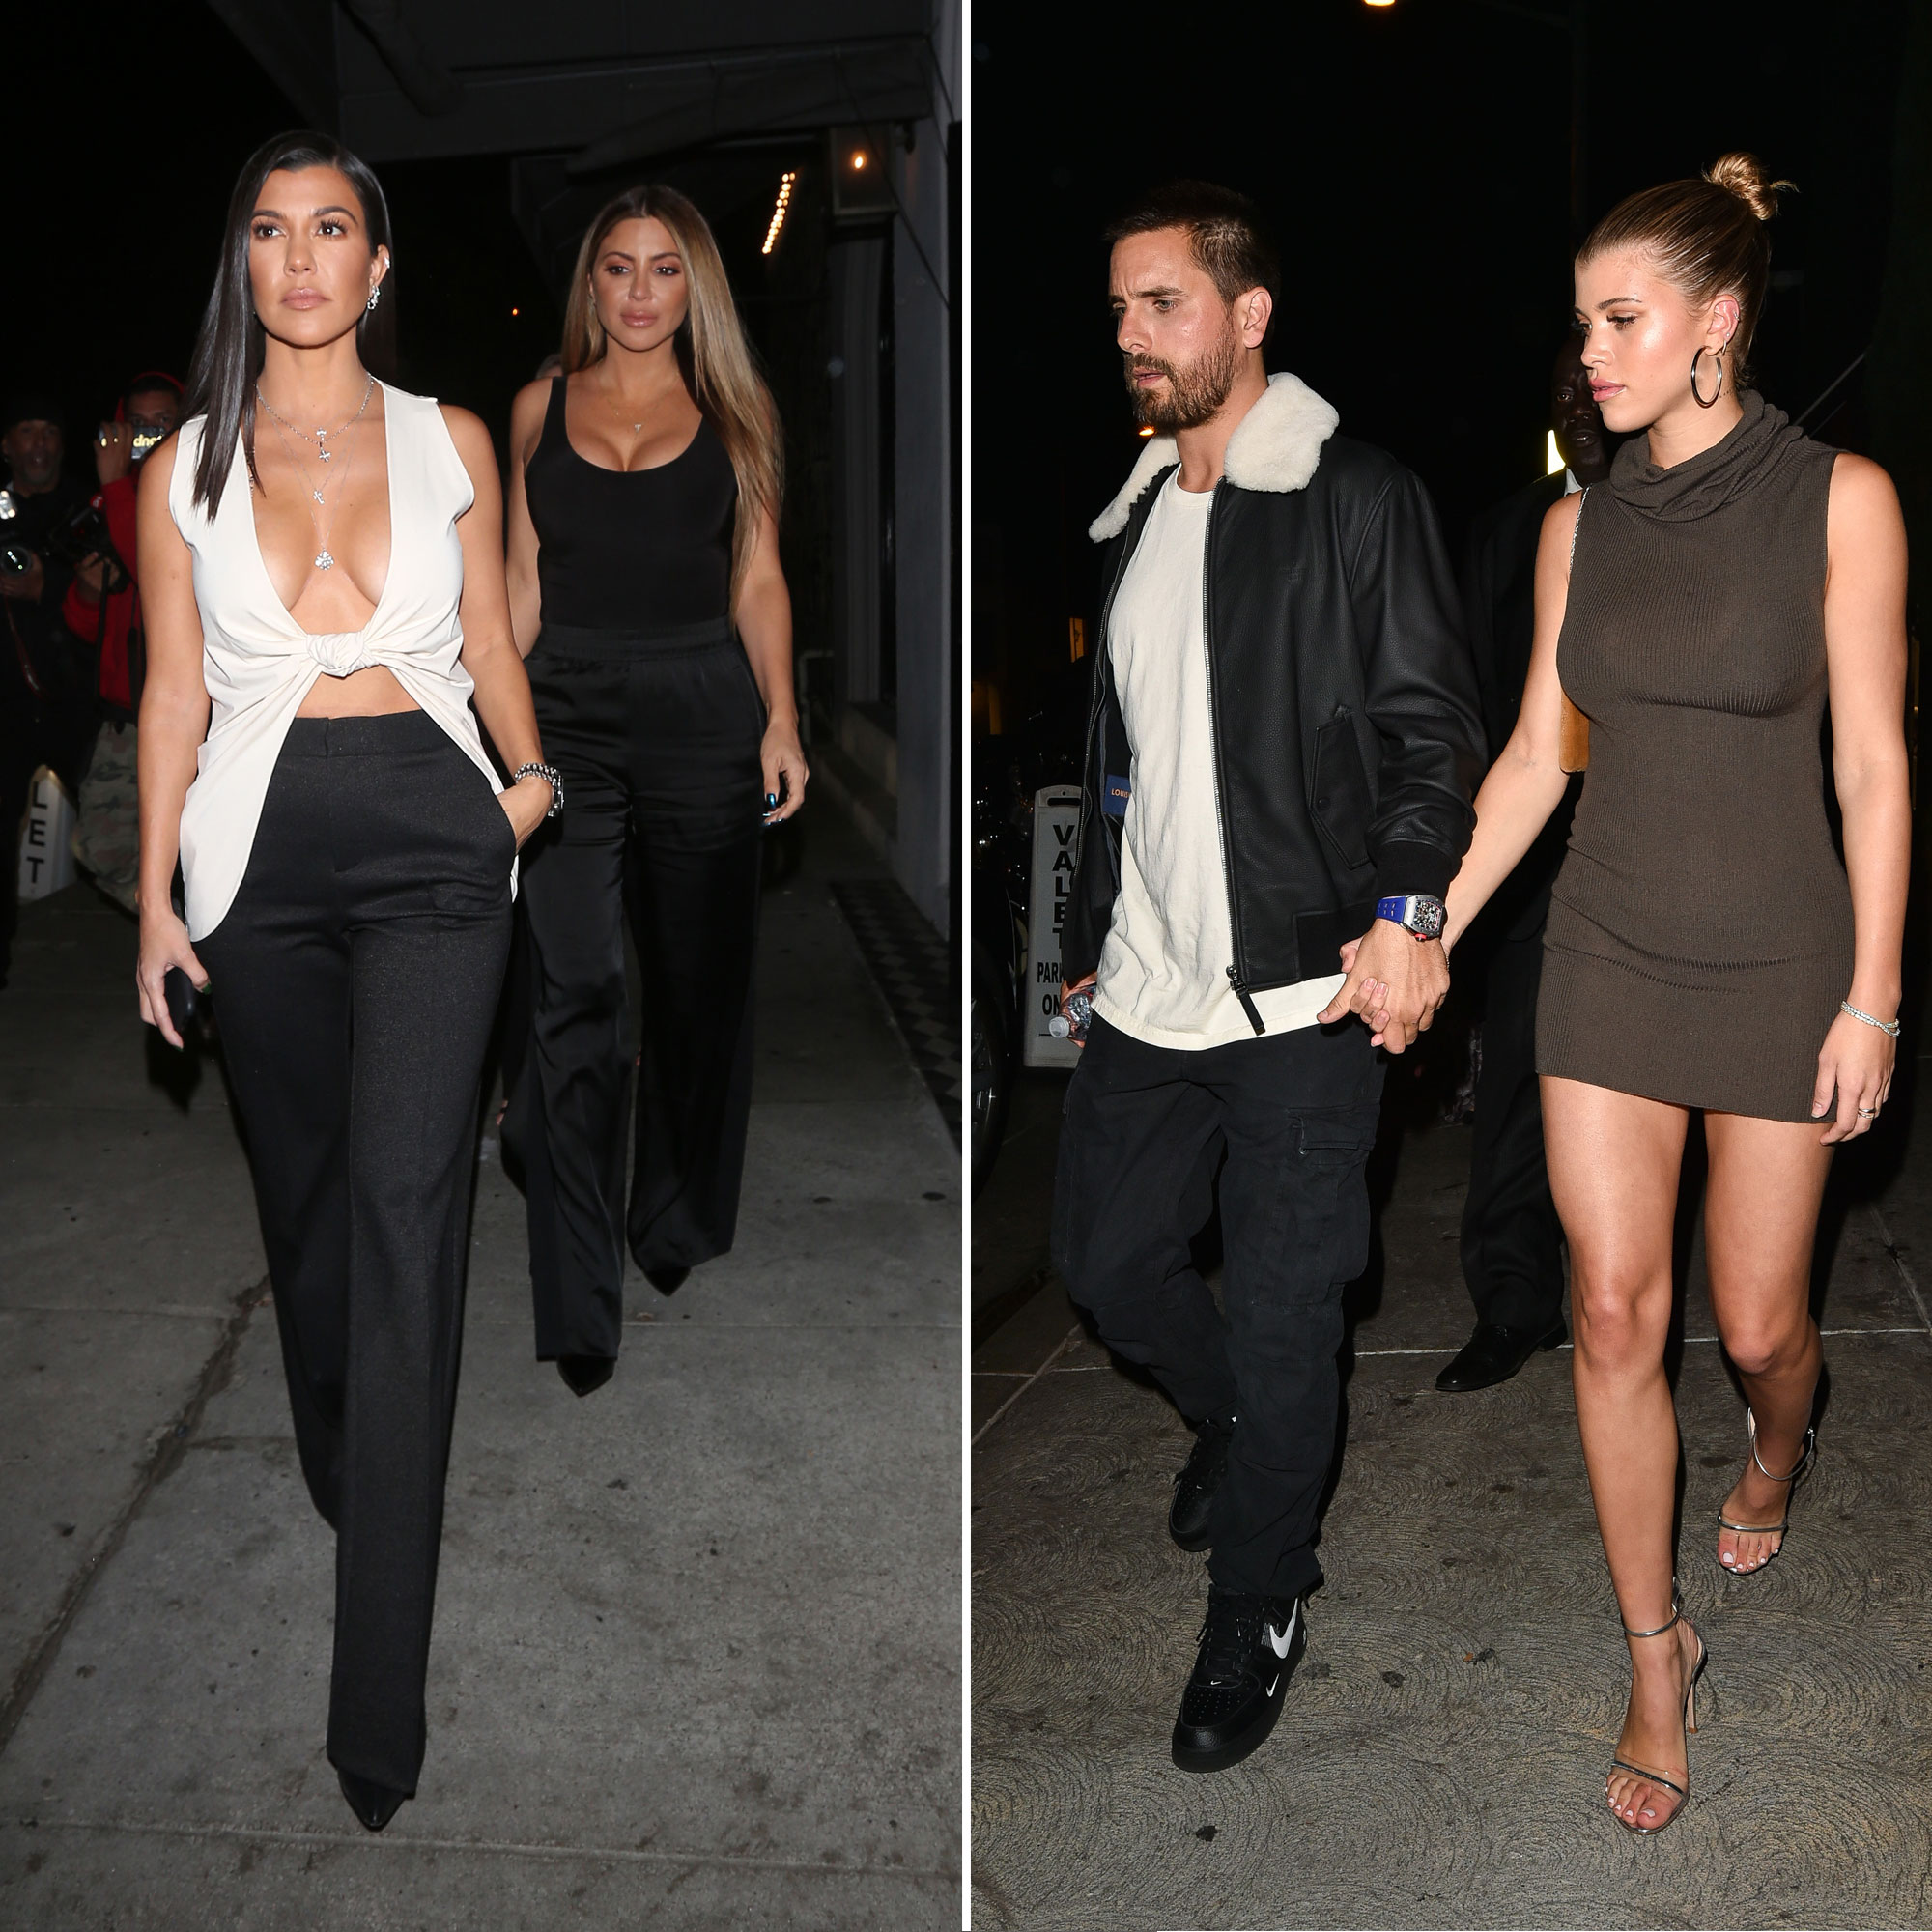 Kourtney Kardashian and Scott Disick - The exes showed they could play nice when they headed to dinner together … with Scott's paramour, Richie.